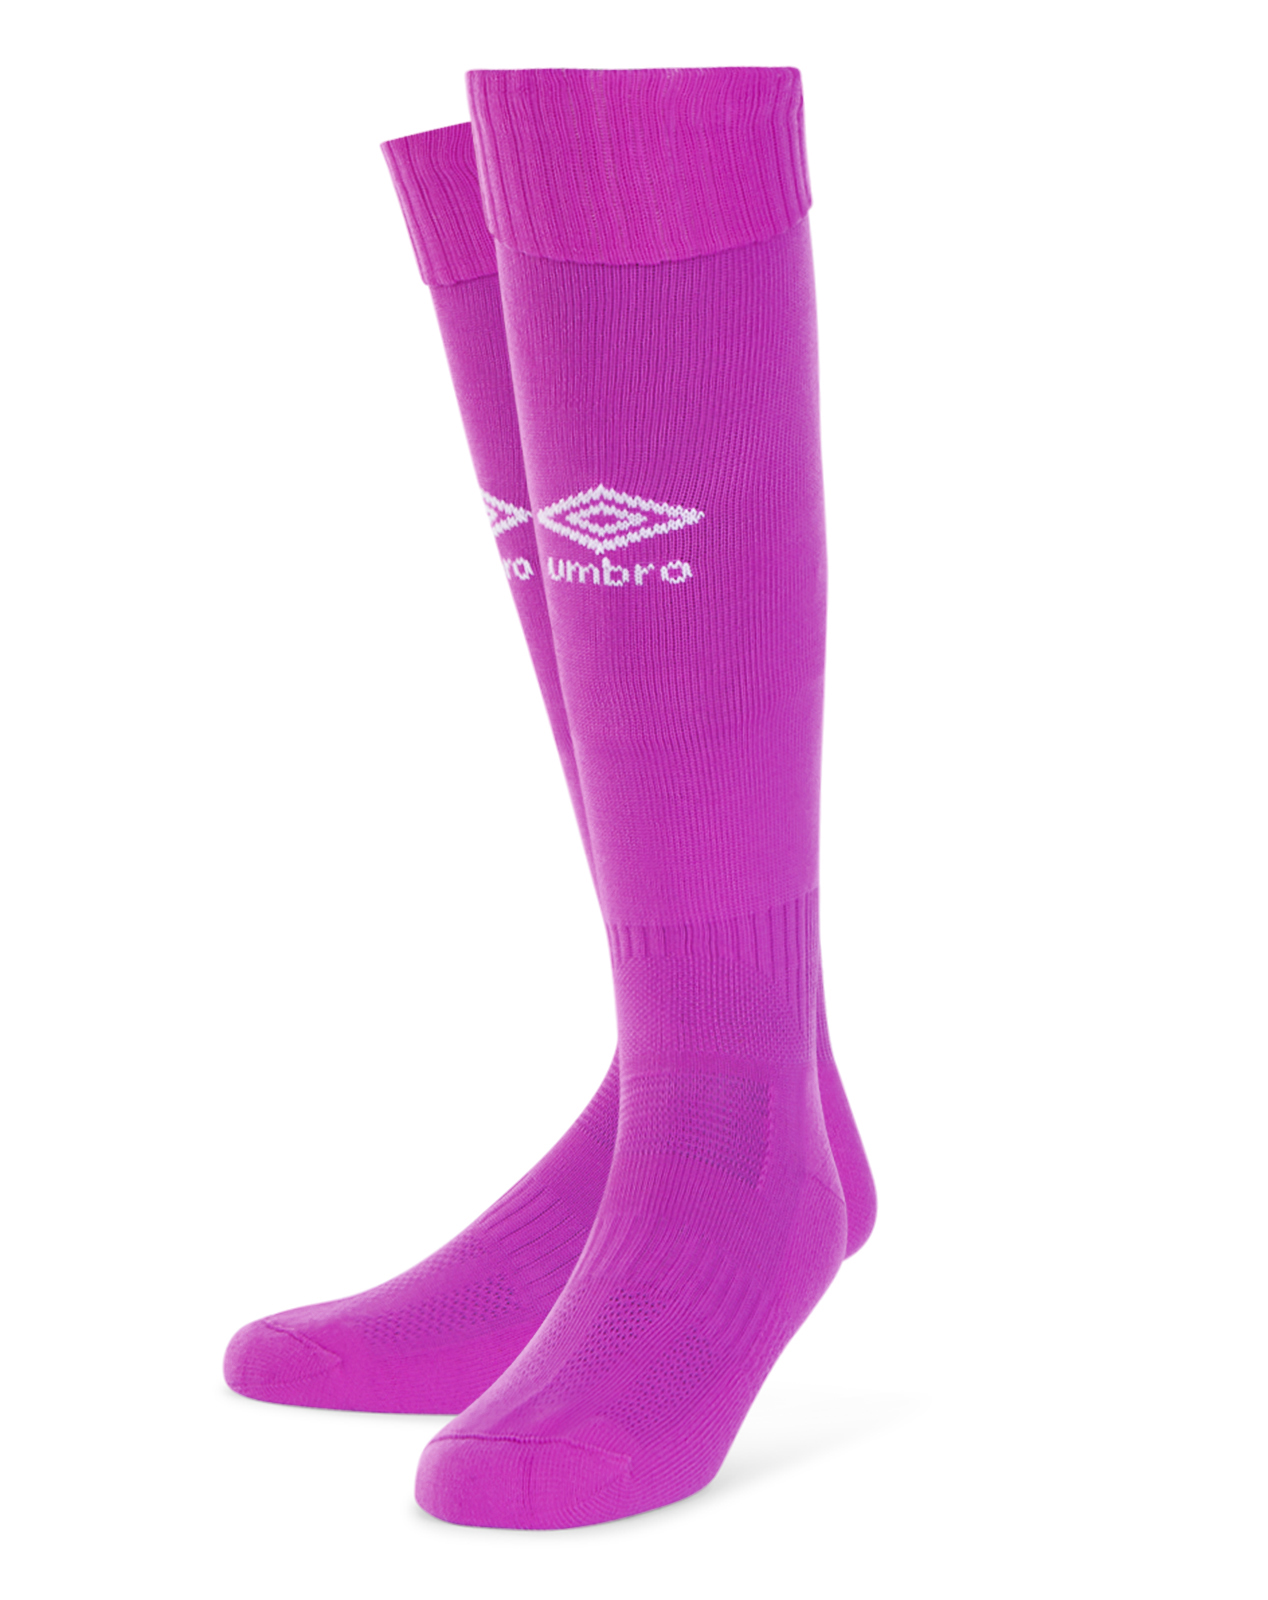 Umbro Classico football sock in purple cactus with white Diamond logo on the front